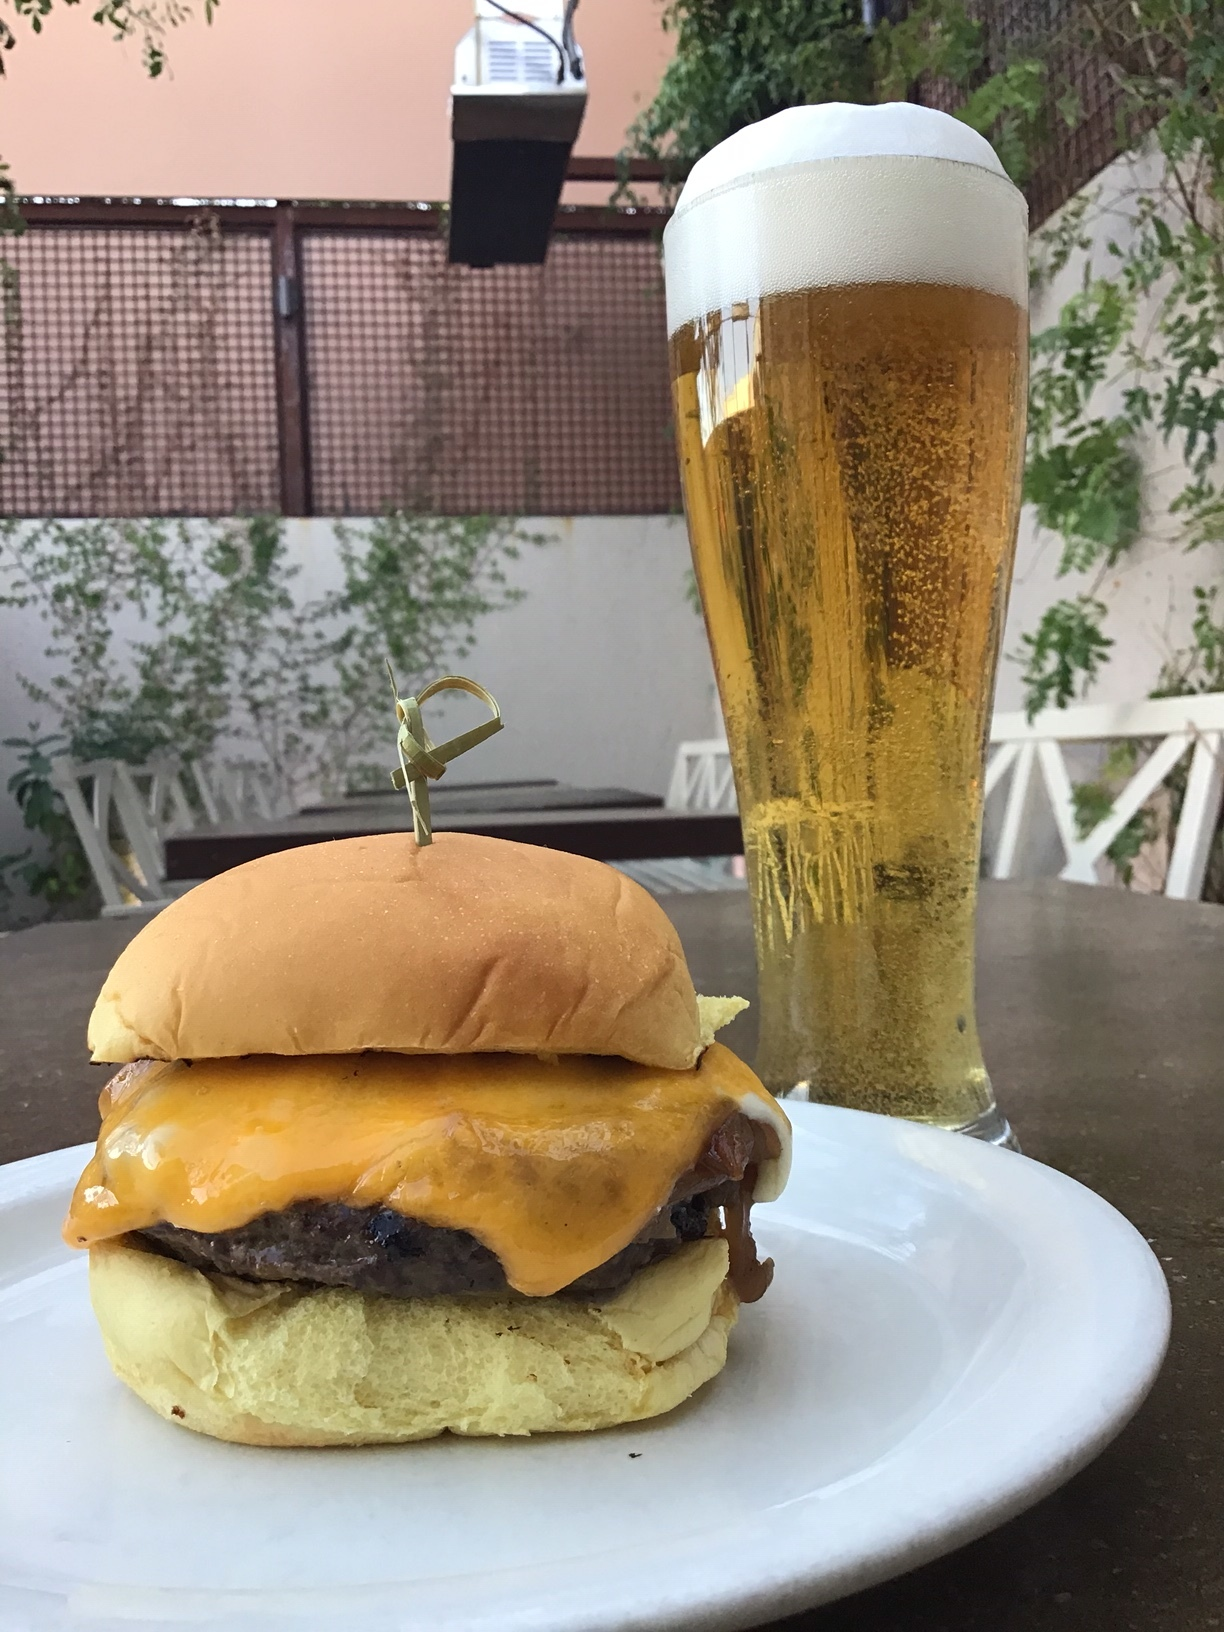 Get a burger and a beer for $10! - Available Sunday - Thursday at the bar9pm - 10pm